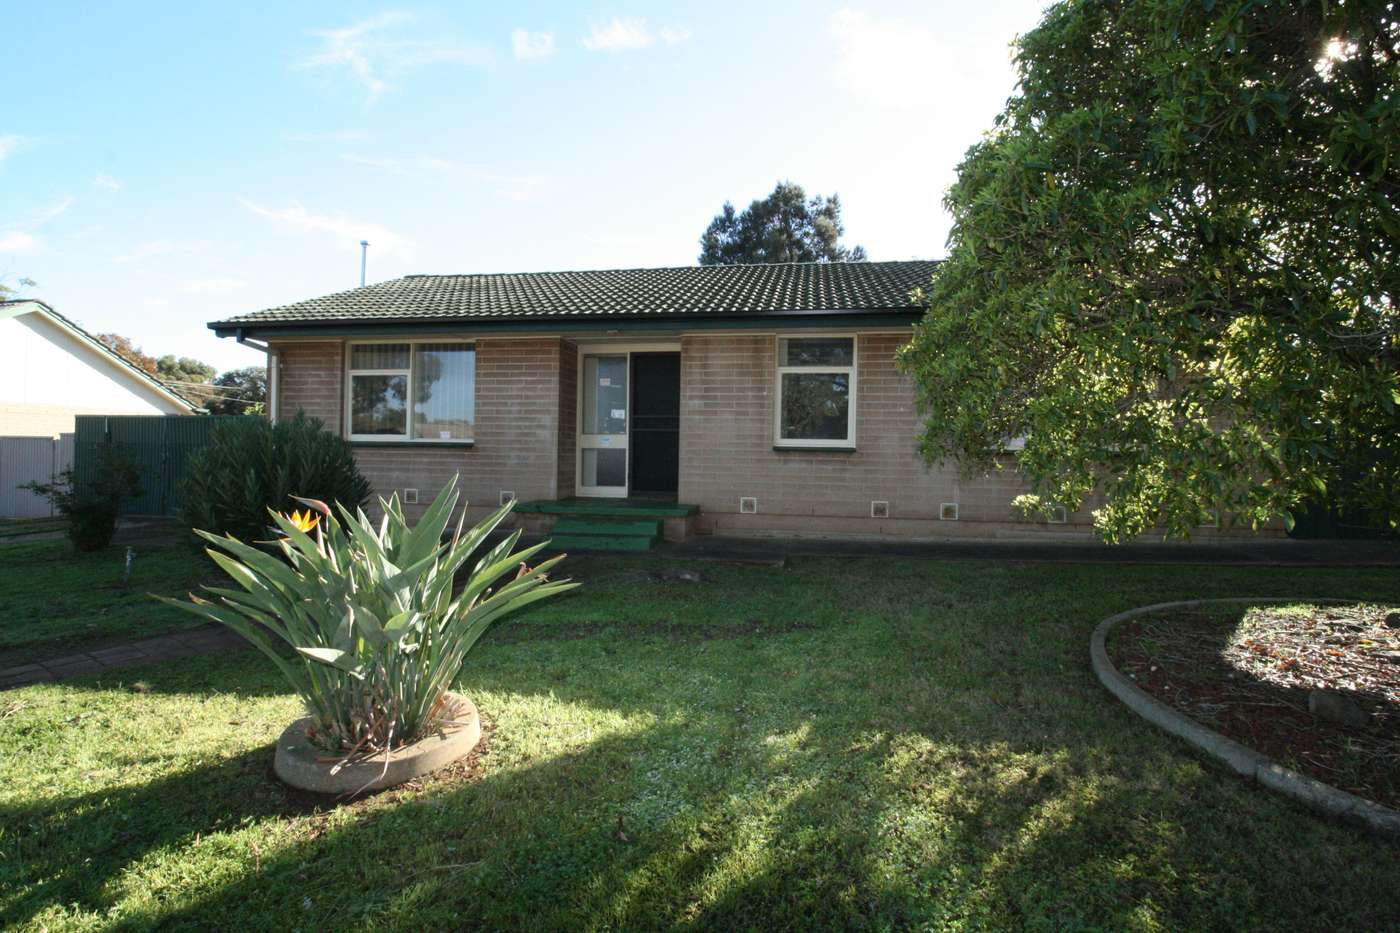 Main view of Homely house listing, 3 Andrew Street, Christie Downs, SA 5164